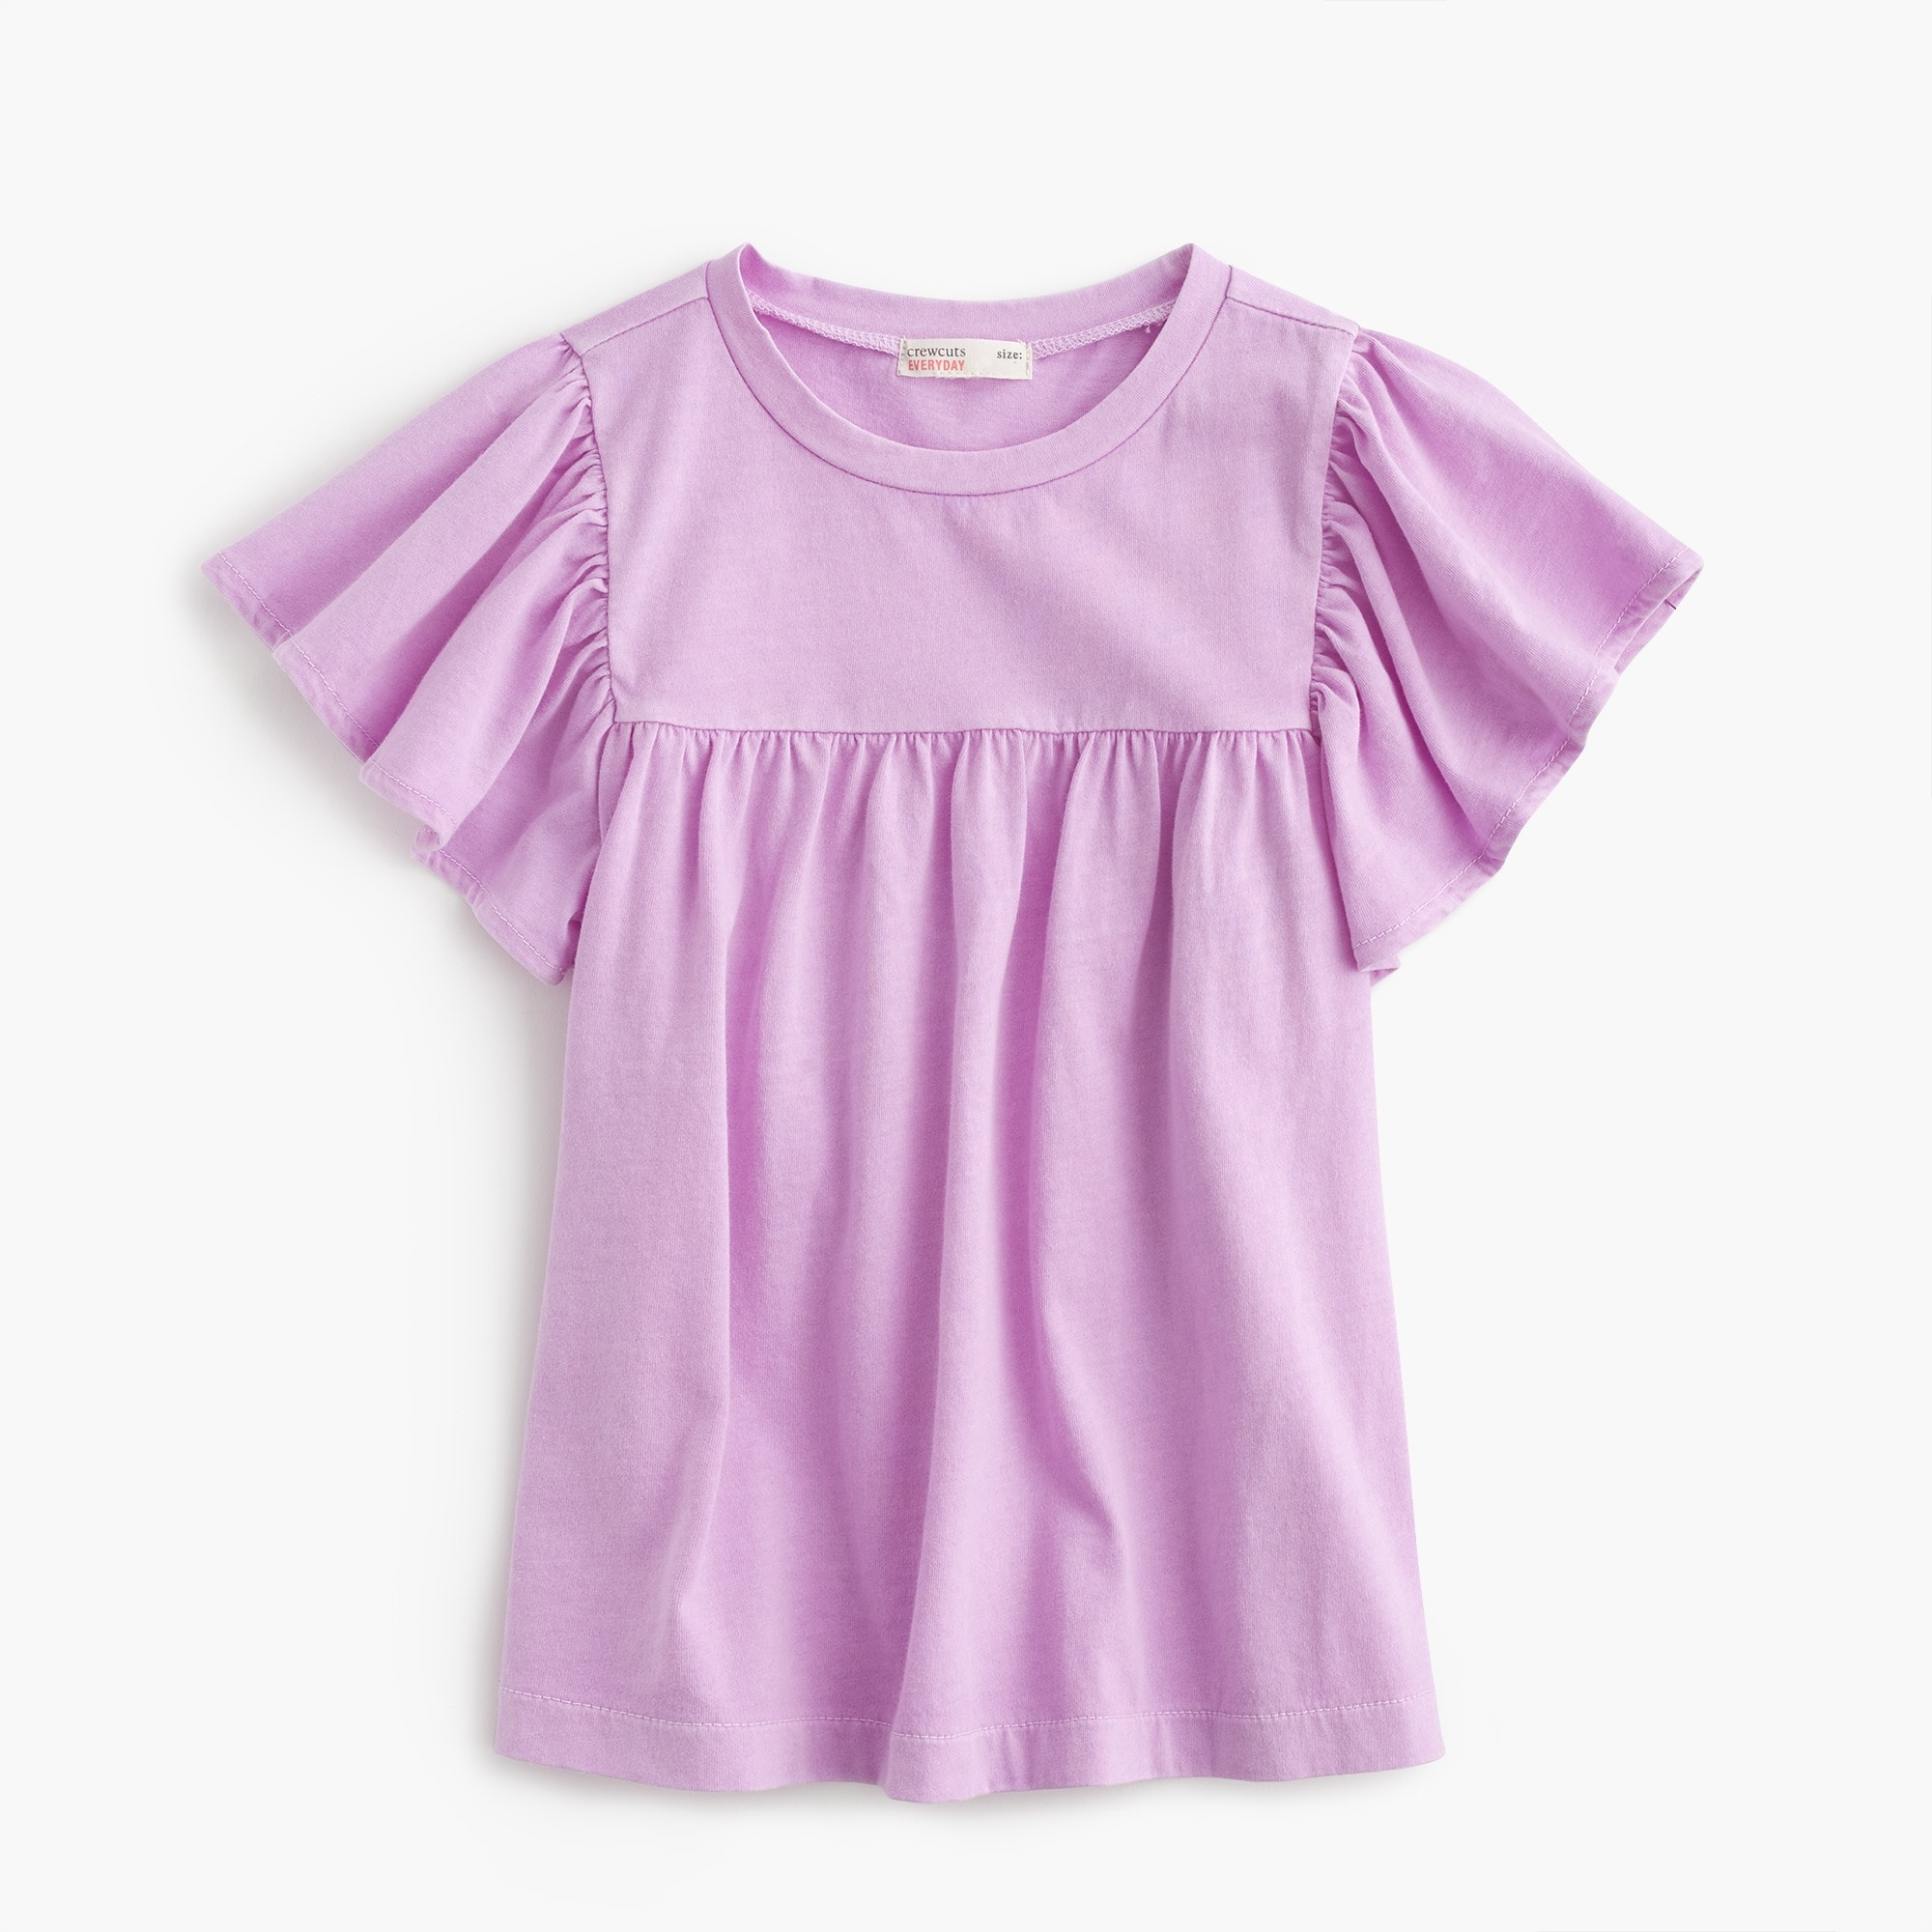 girls Girls' bell-sleeved T-shirt